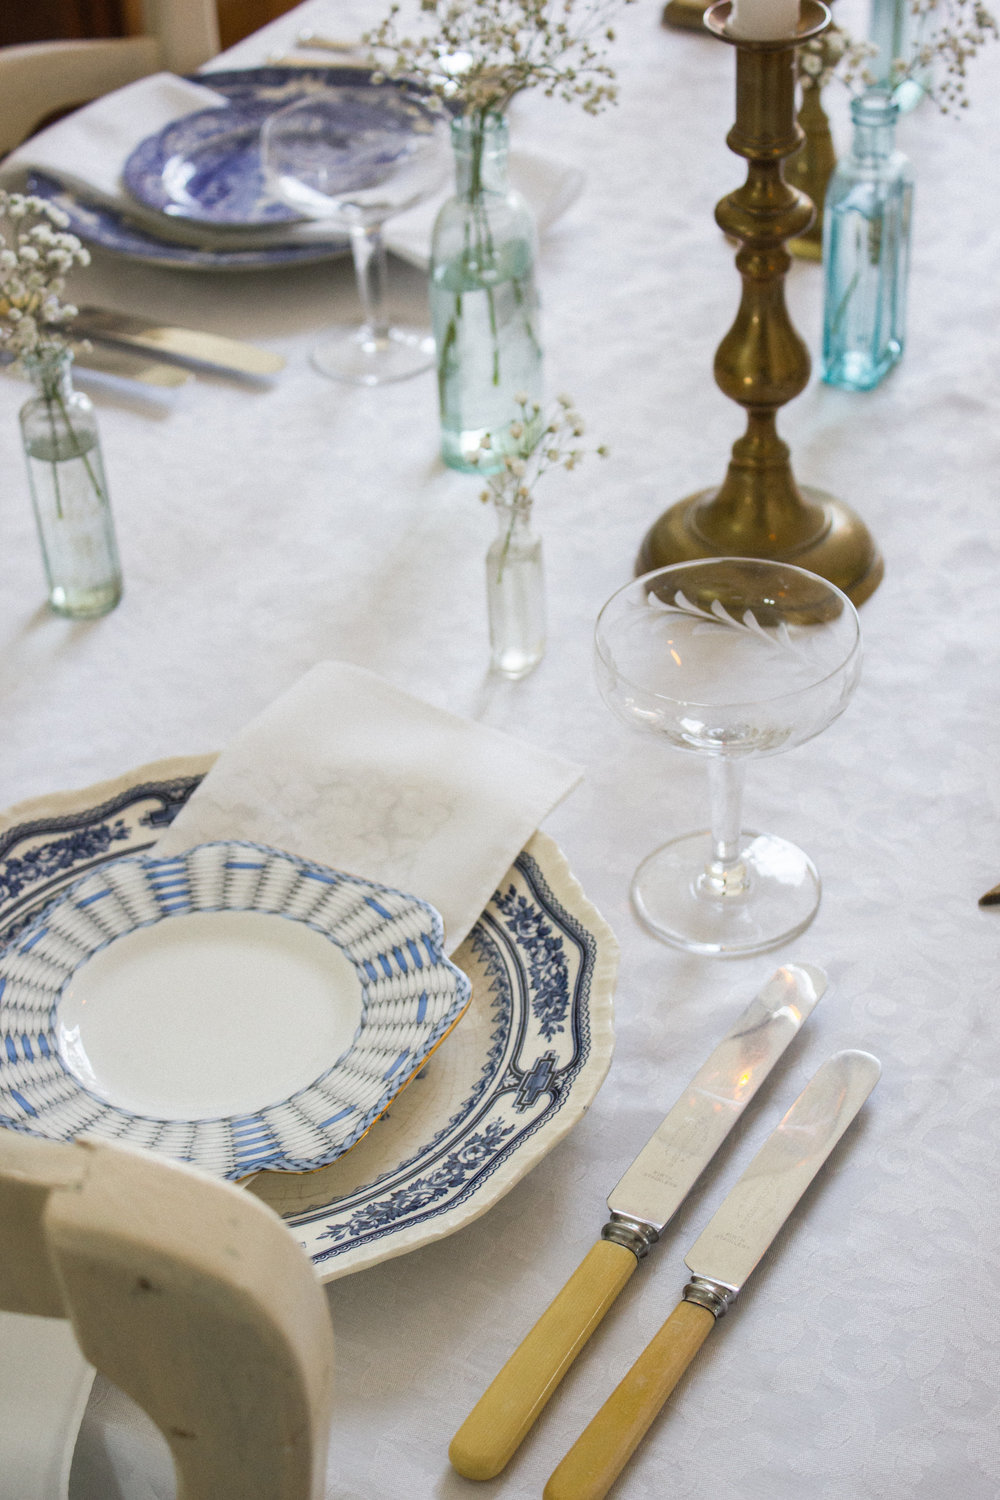 Vintage Amy Wedding Styling and Hiring-Vintage Blue and White Plates To Hire-Kent and Sussex